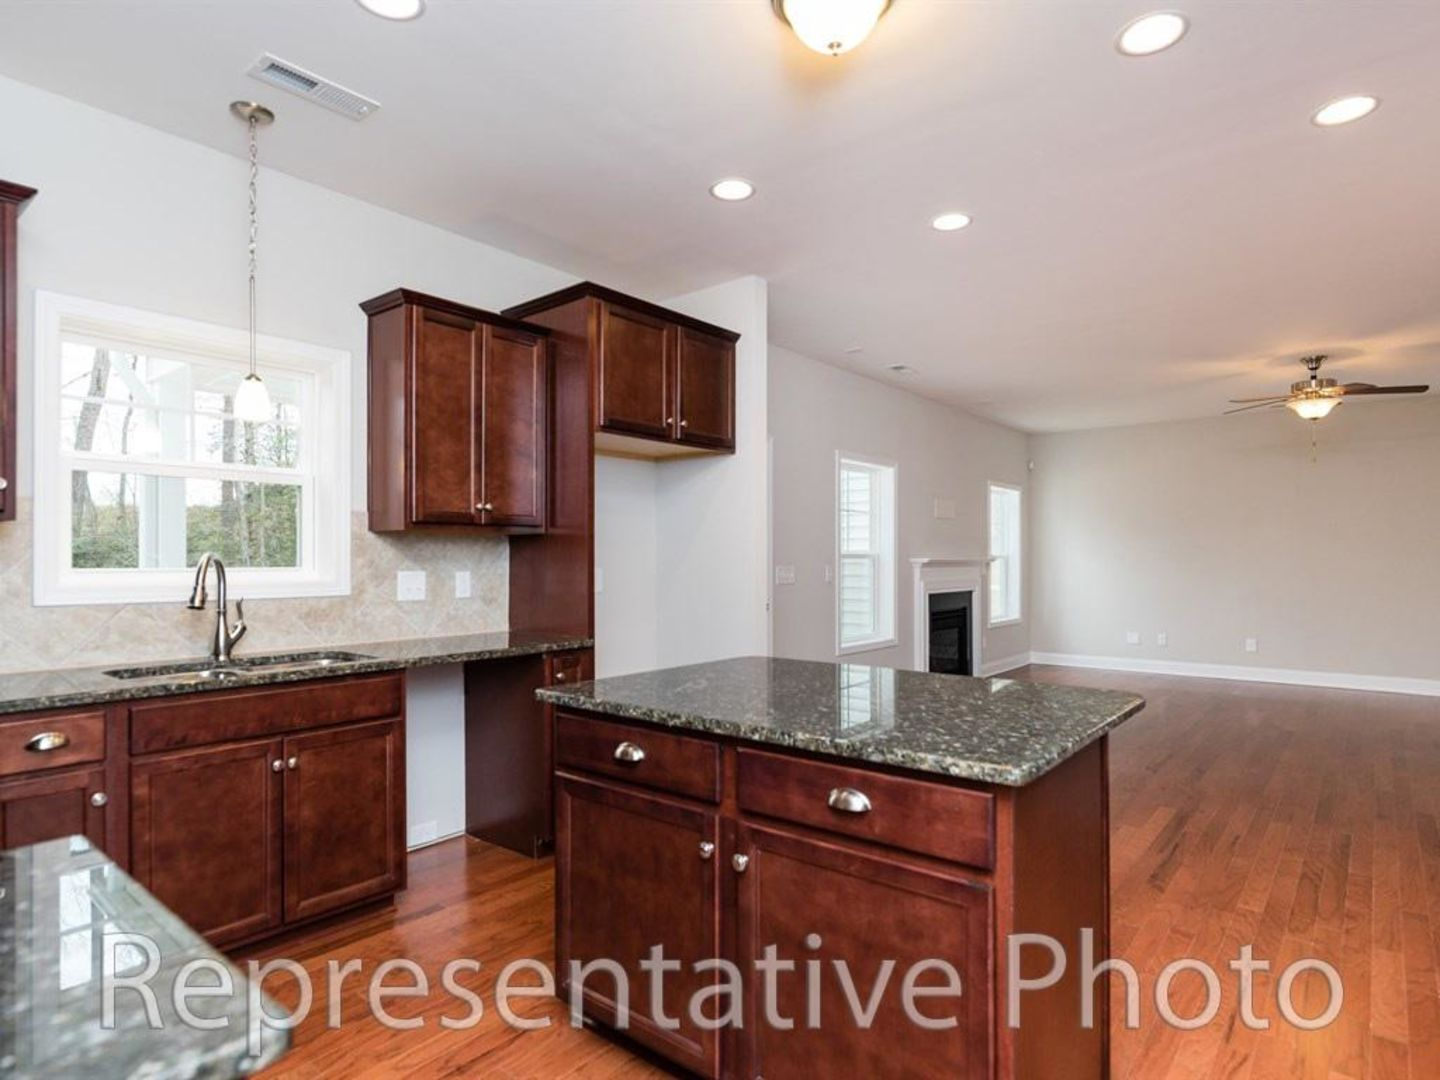 Kitchen featured in the Wilmington 2865 By HH Homes in Raleigh-Durham-Chapel Hill, NC